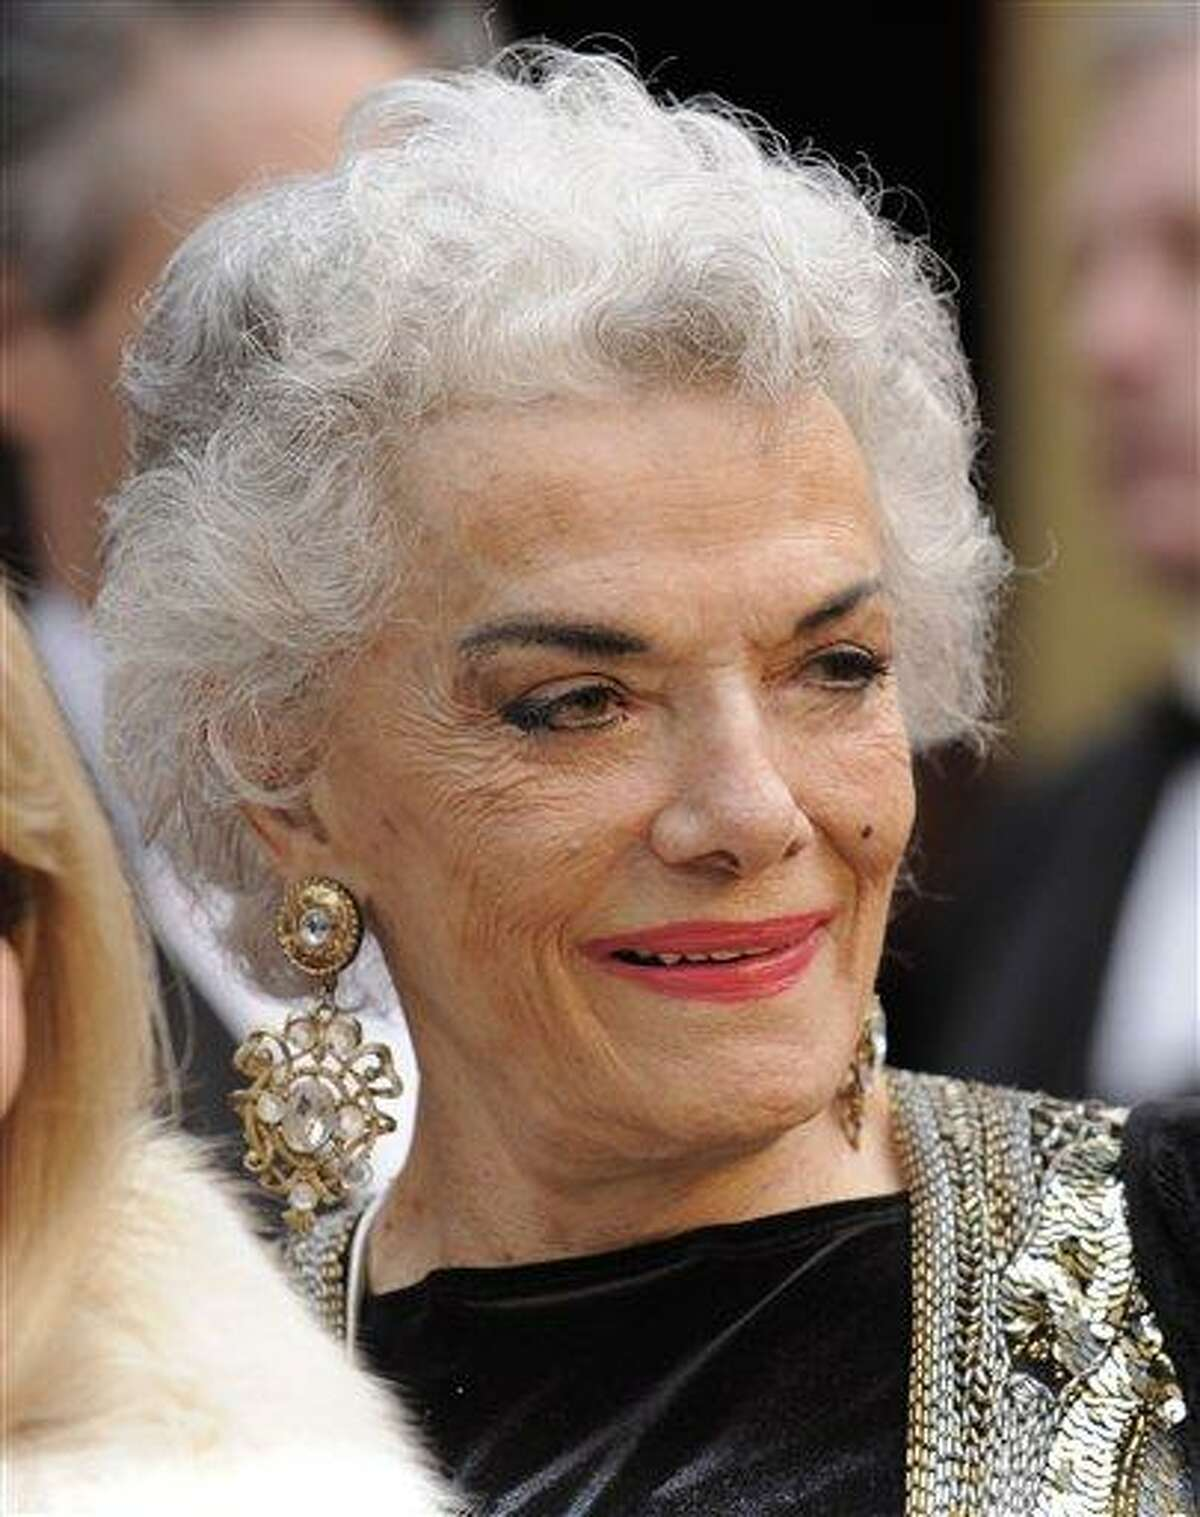 FILE - In this Feb. 24, 2008 file photo, actress Jane Russell arrives at the 80th Academy Awards at the Kodak Theatre in Los Angeles. A family member on Monday, Feb. 28, 2011 said Russell, stunning star of 1940s and 1950s films, has died at age 89. (AP Photo/Kevork Djansezian, File)